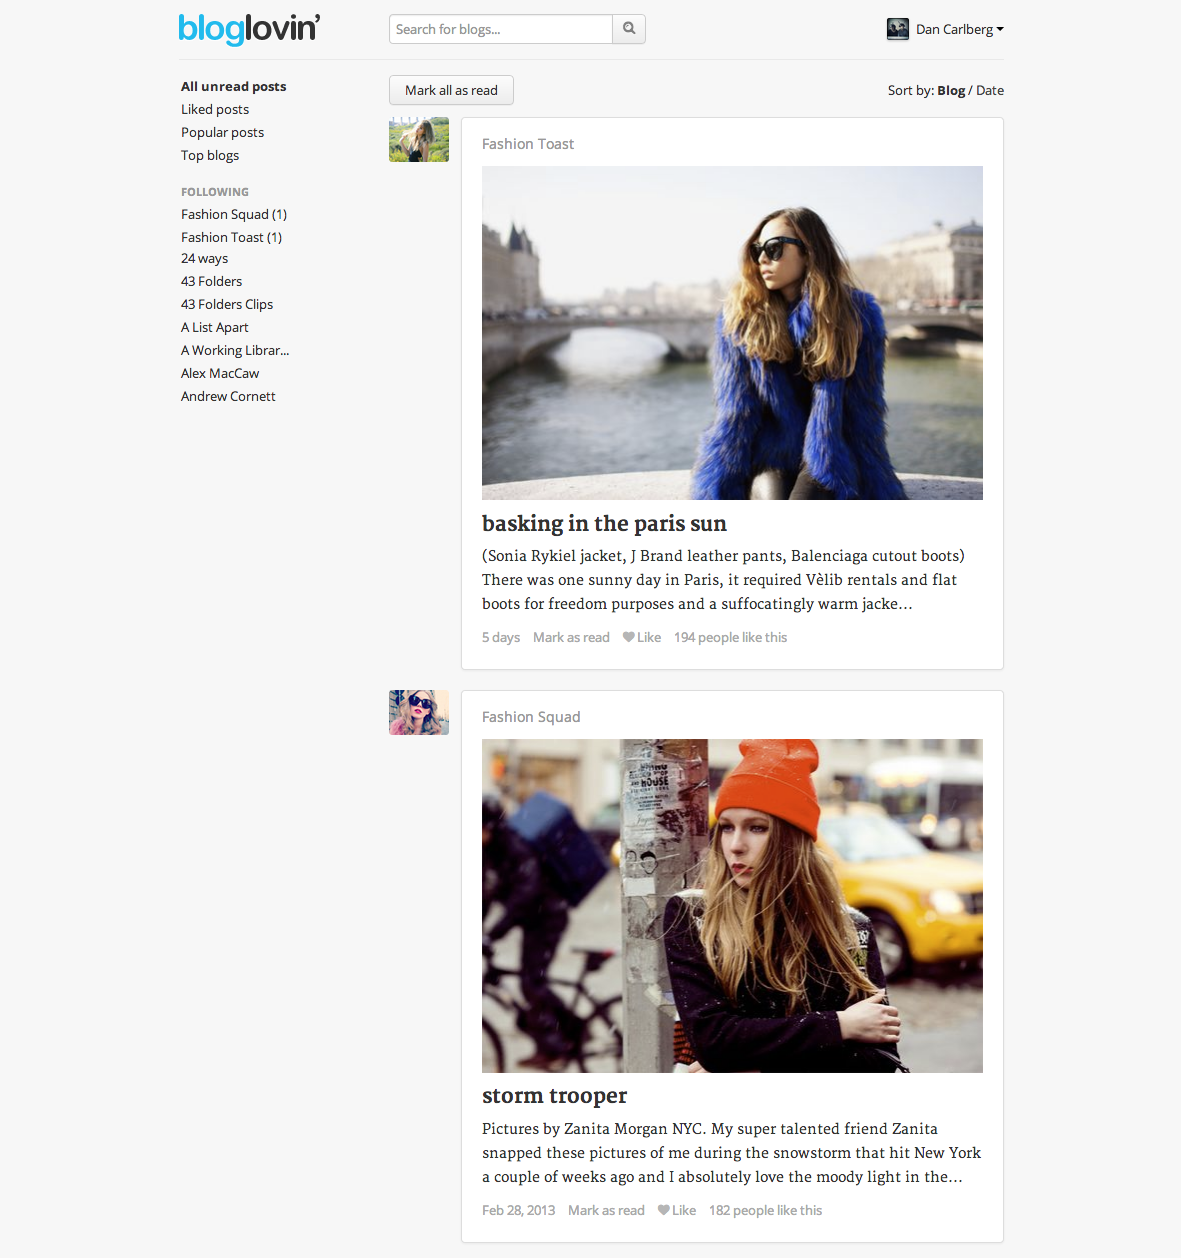 The Bloglovin feed